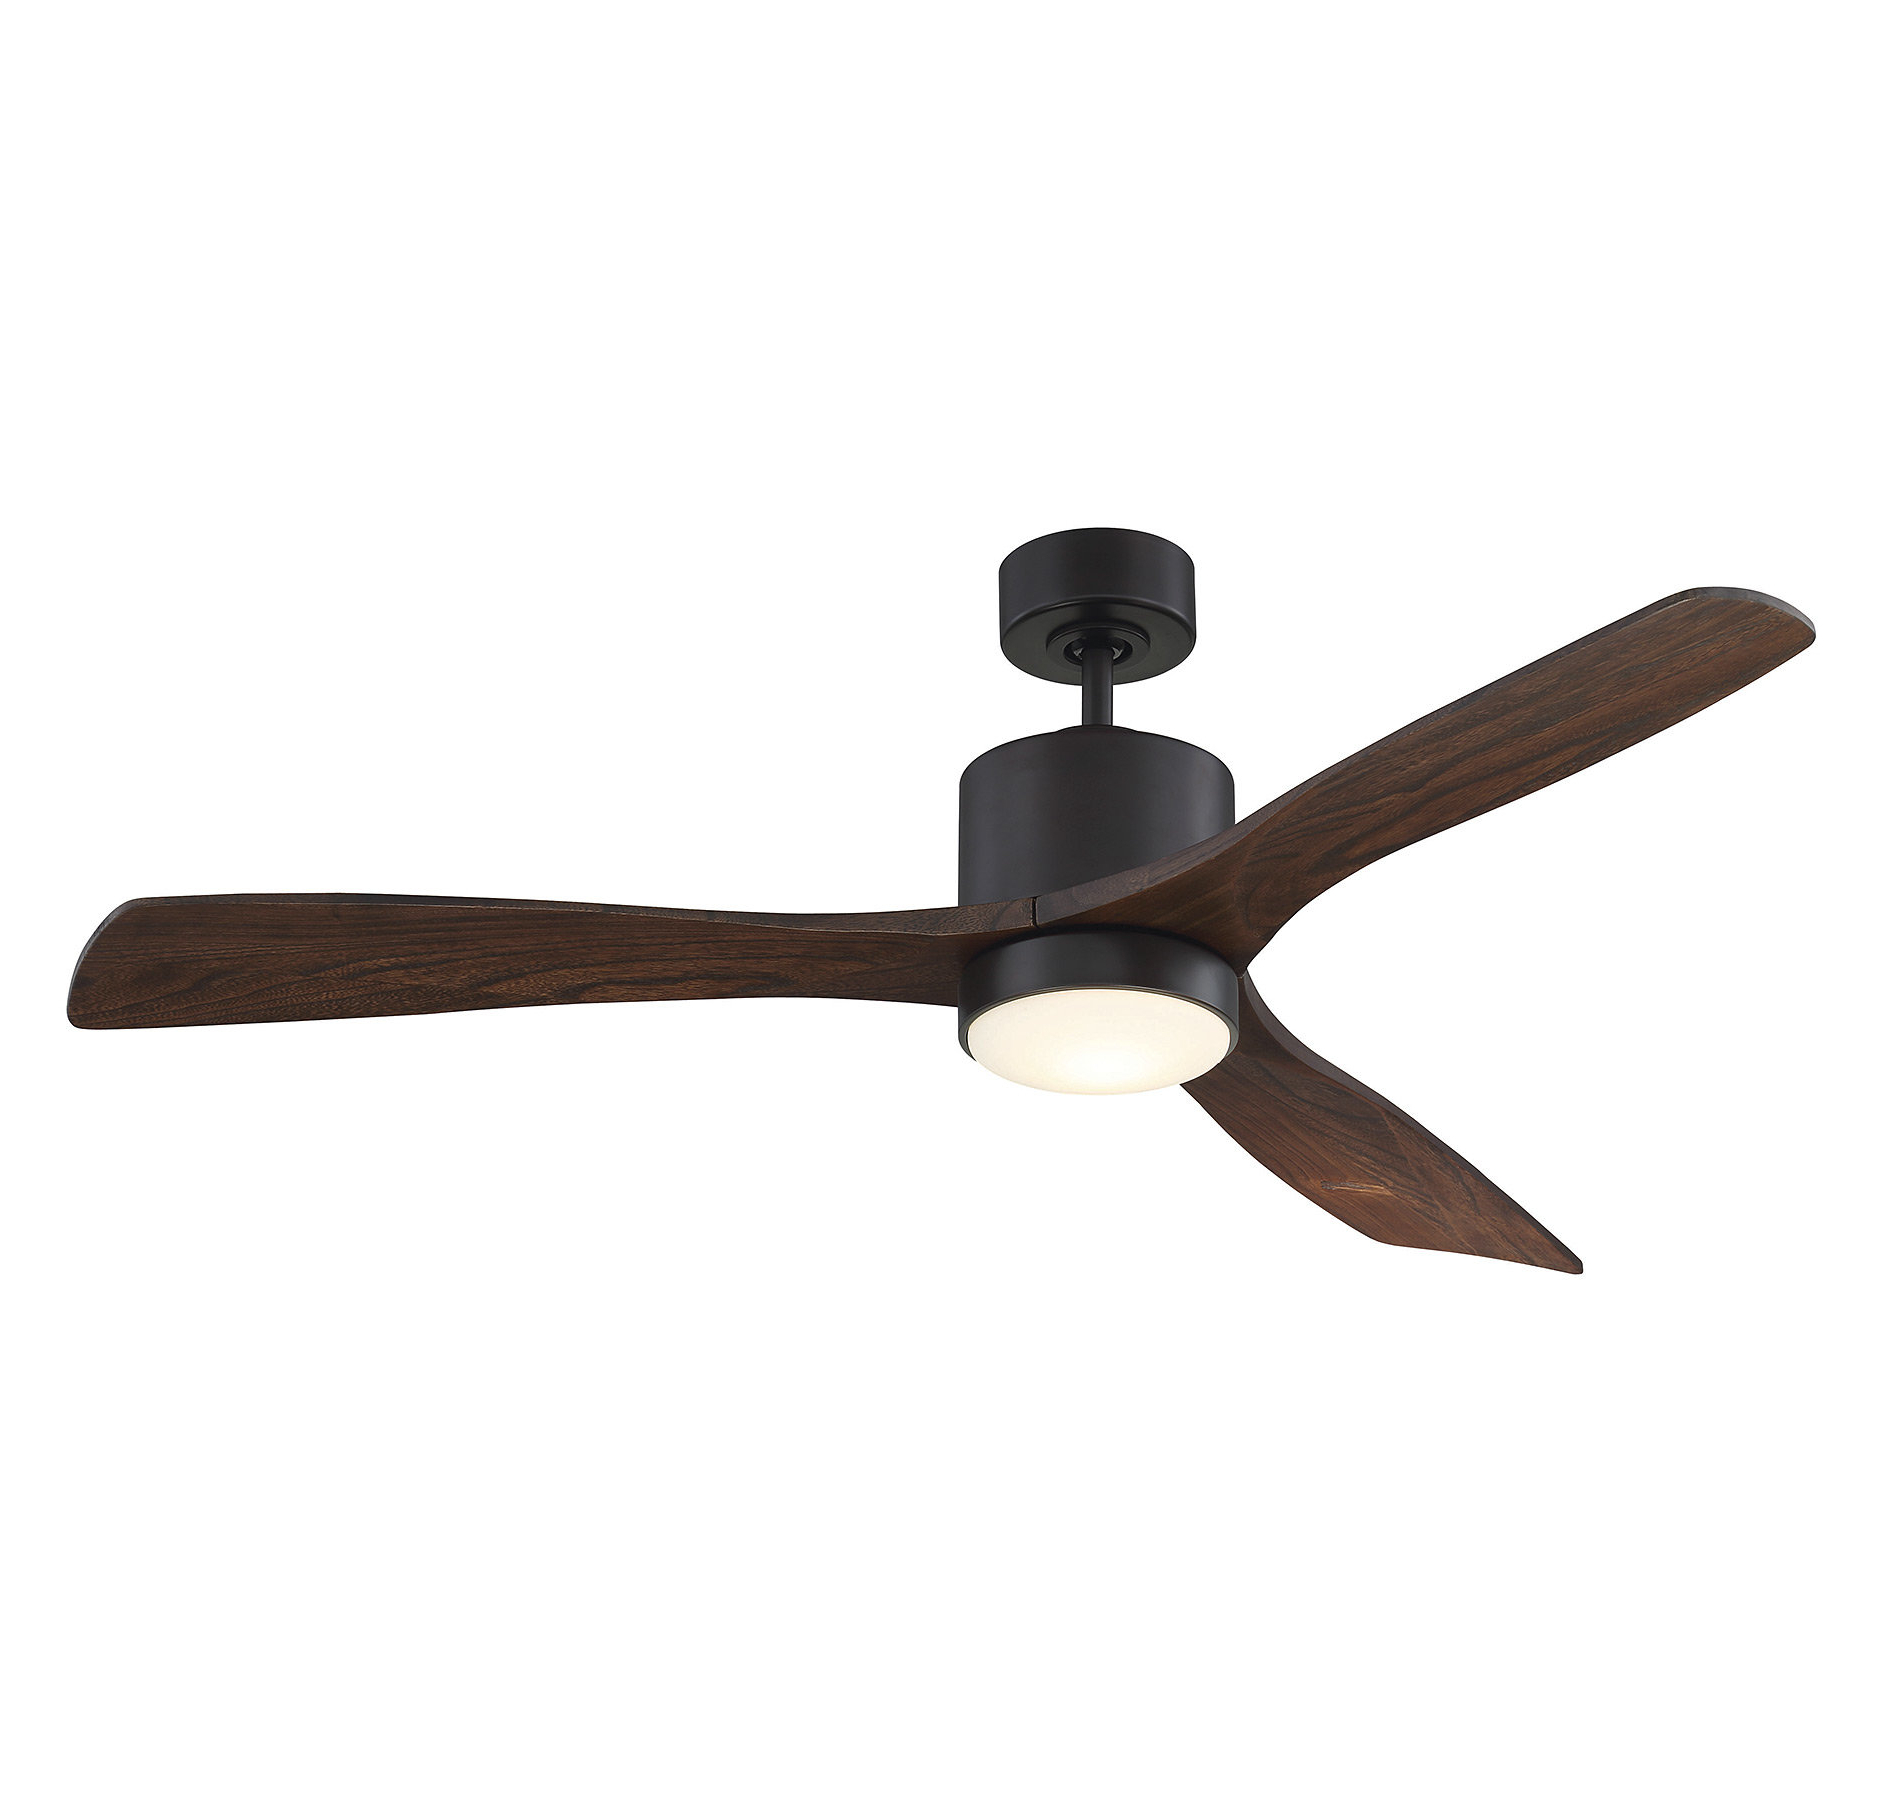 "Fashionable Paige 3 Blade Led Ceiling Fans Pertaining To 52"" Chadha 3 Blade Ceiling Fan, Light Kit Included (View 6 of 20)"